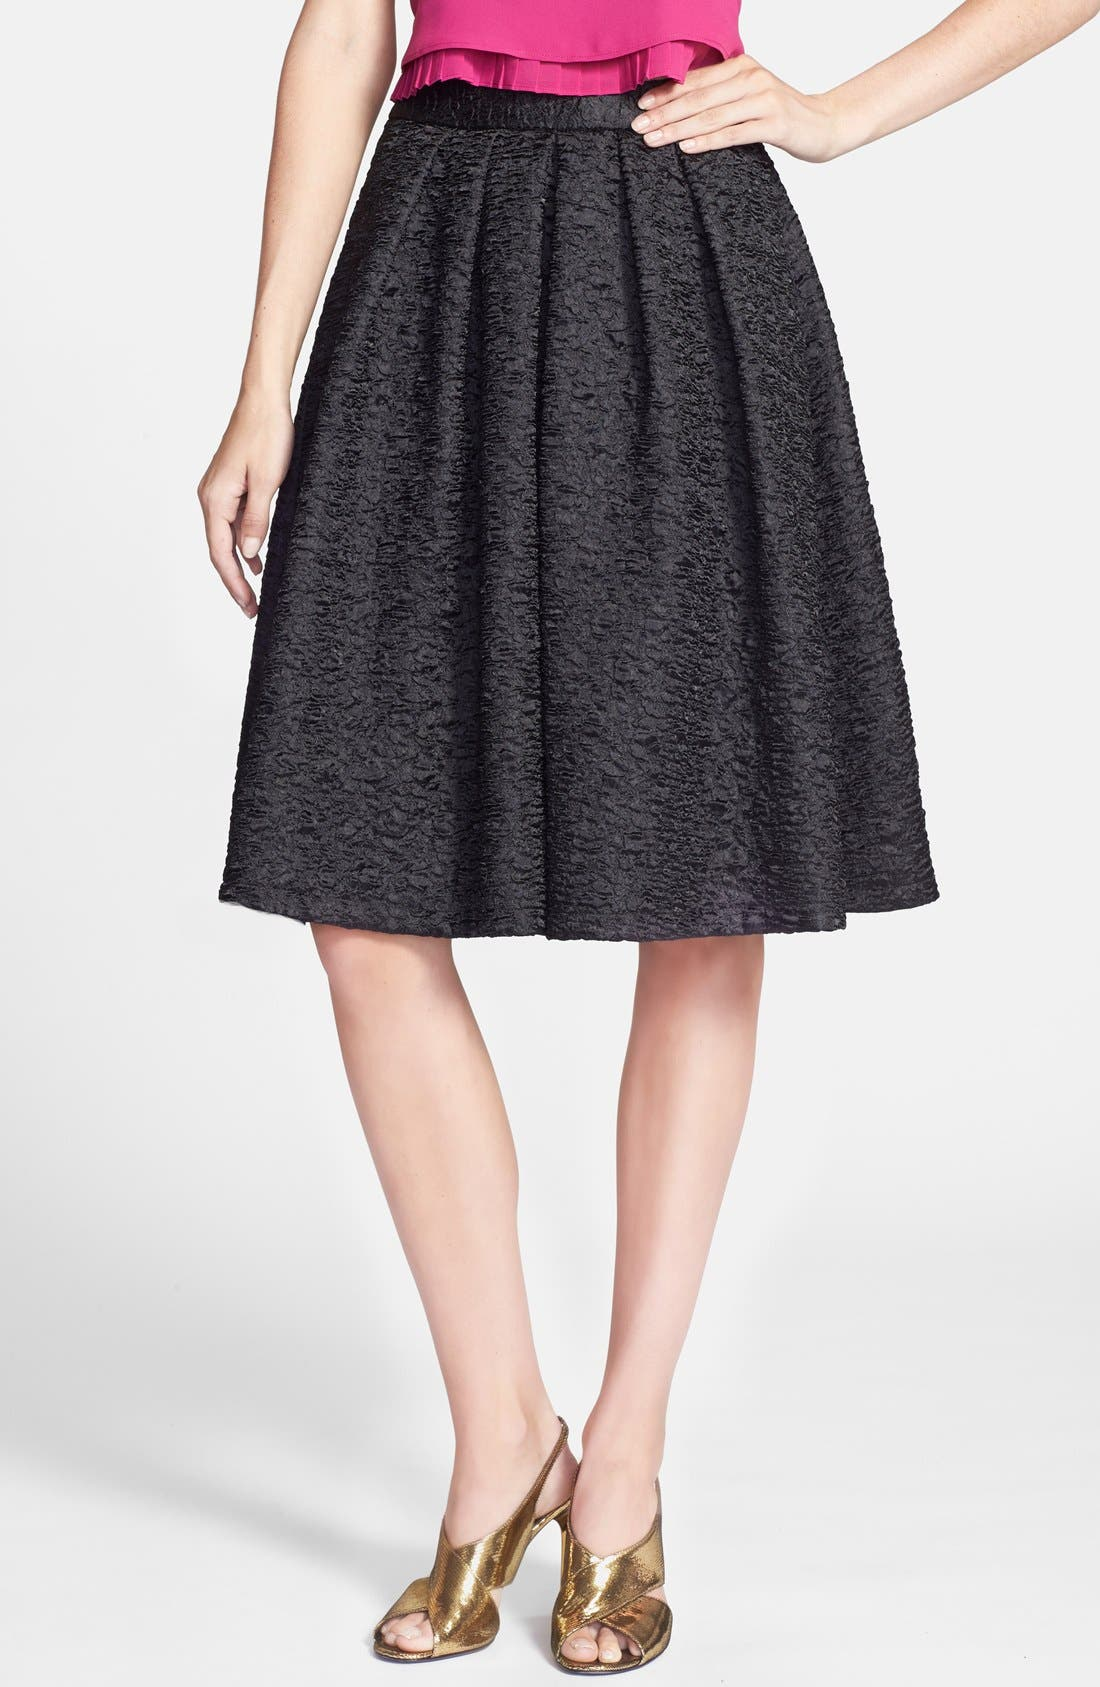 ASTR THE LABEL, ASTR Textured Pleat Skirt, Main thumbnail 1, color, 001